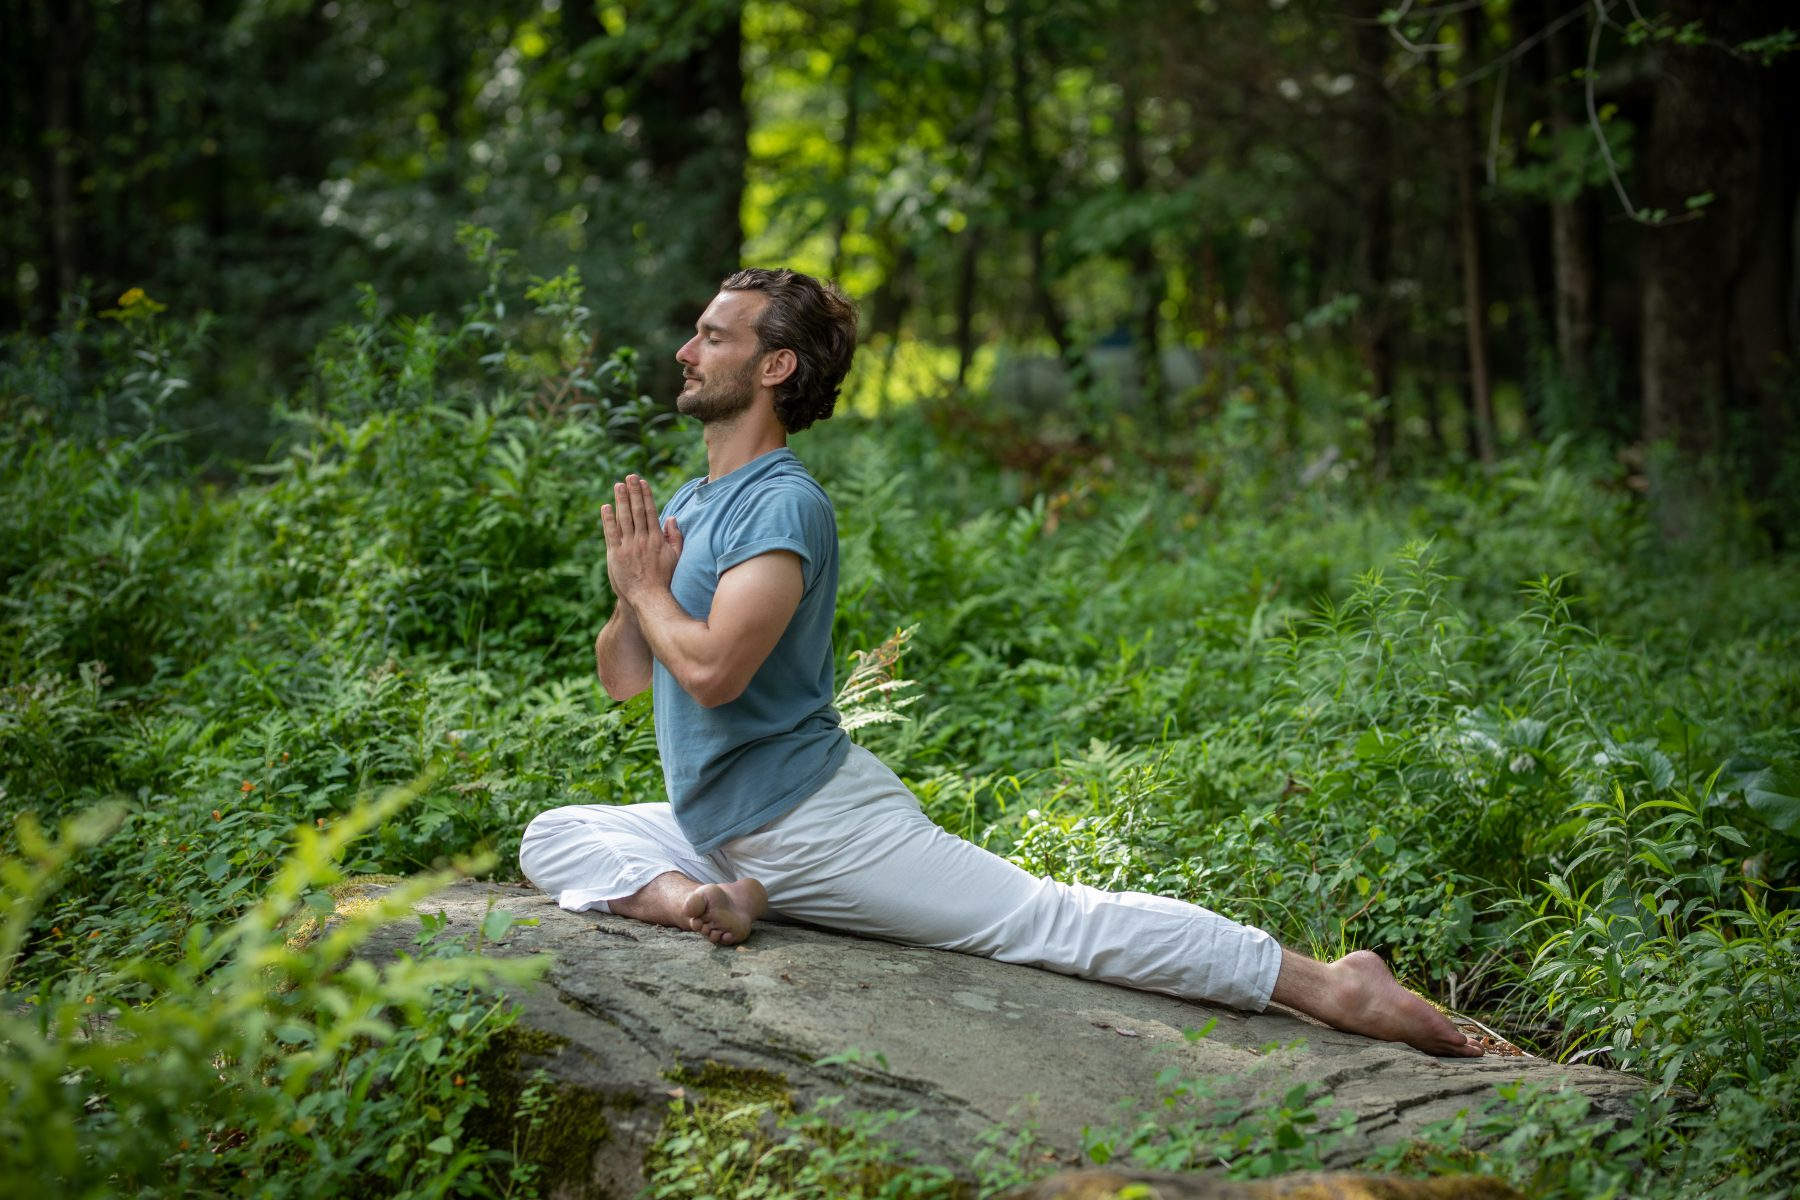 Yoga for Back Care at the Sivananda Yoga Ranch